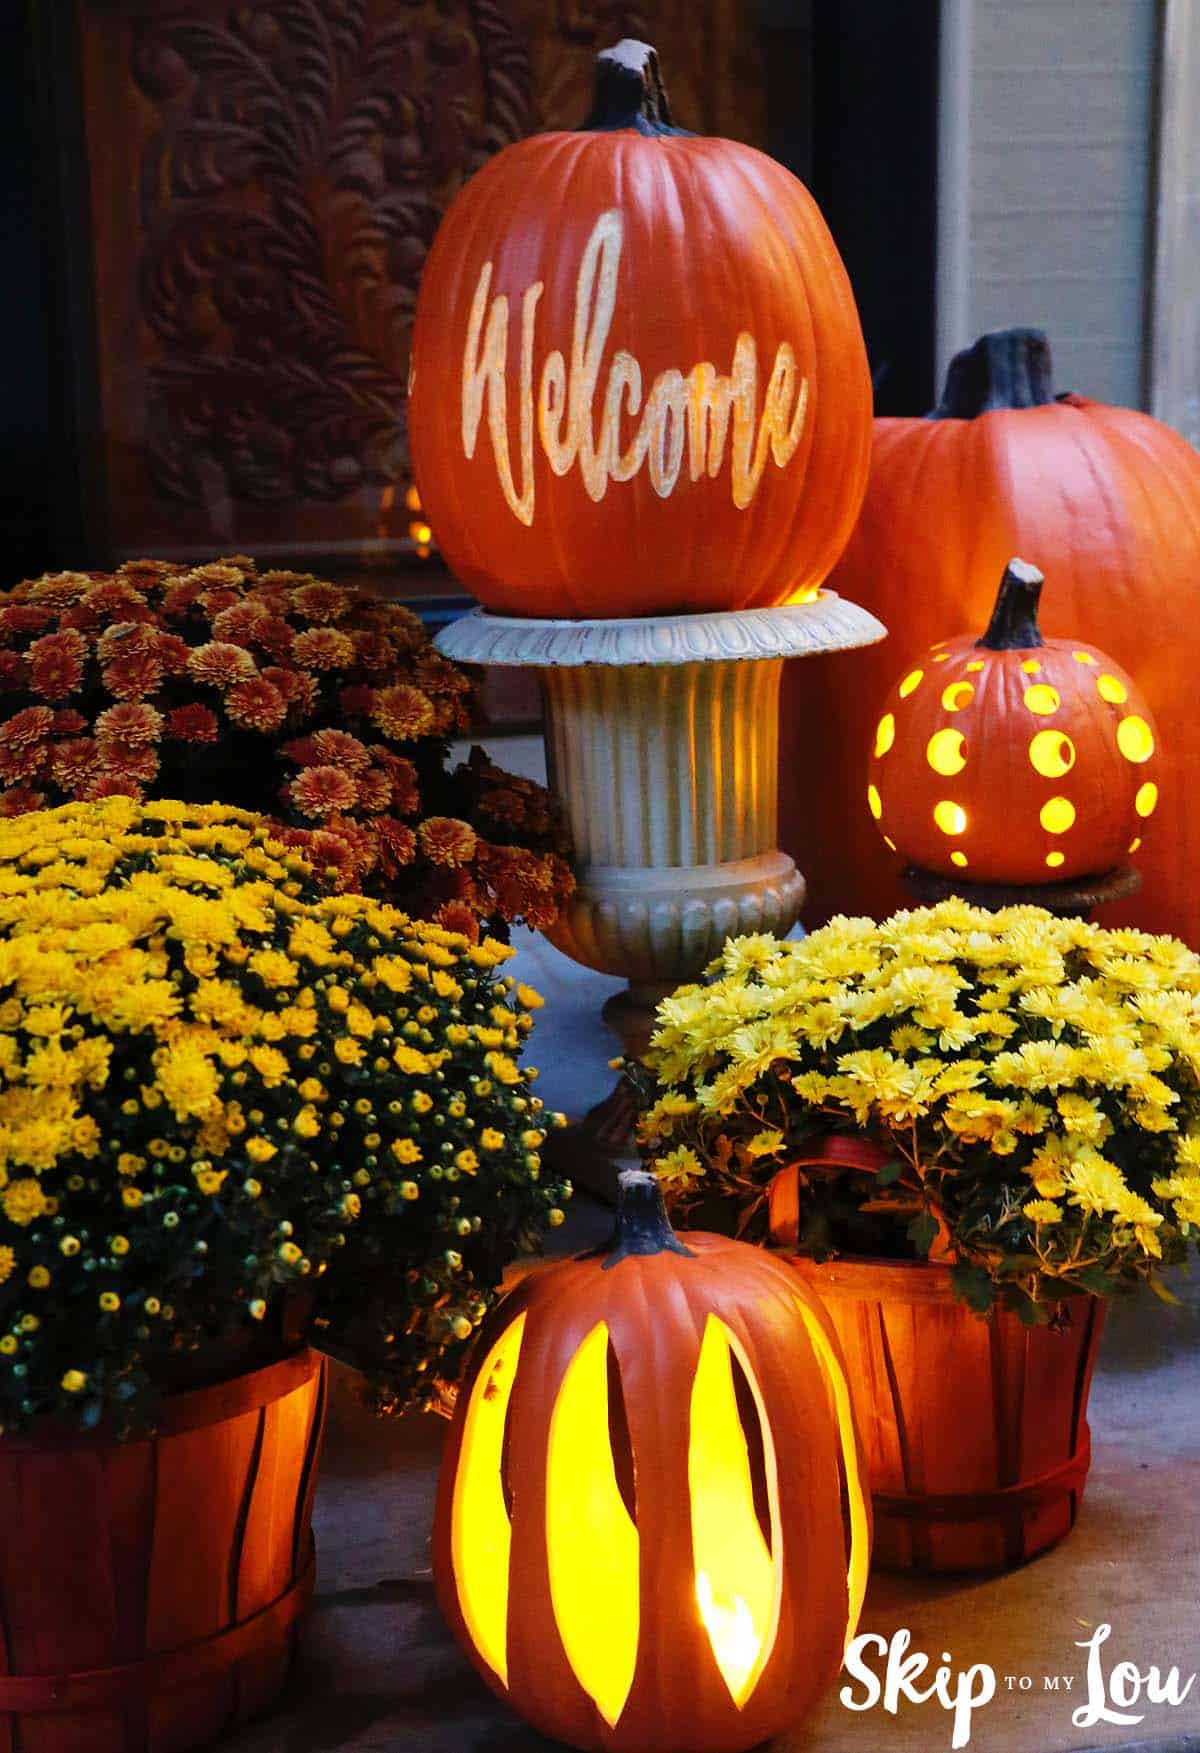 : fall decorating ideas with pumpkins - www.pureclipart.com